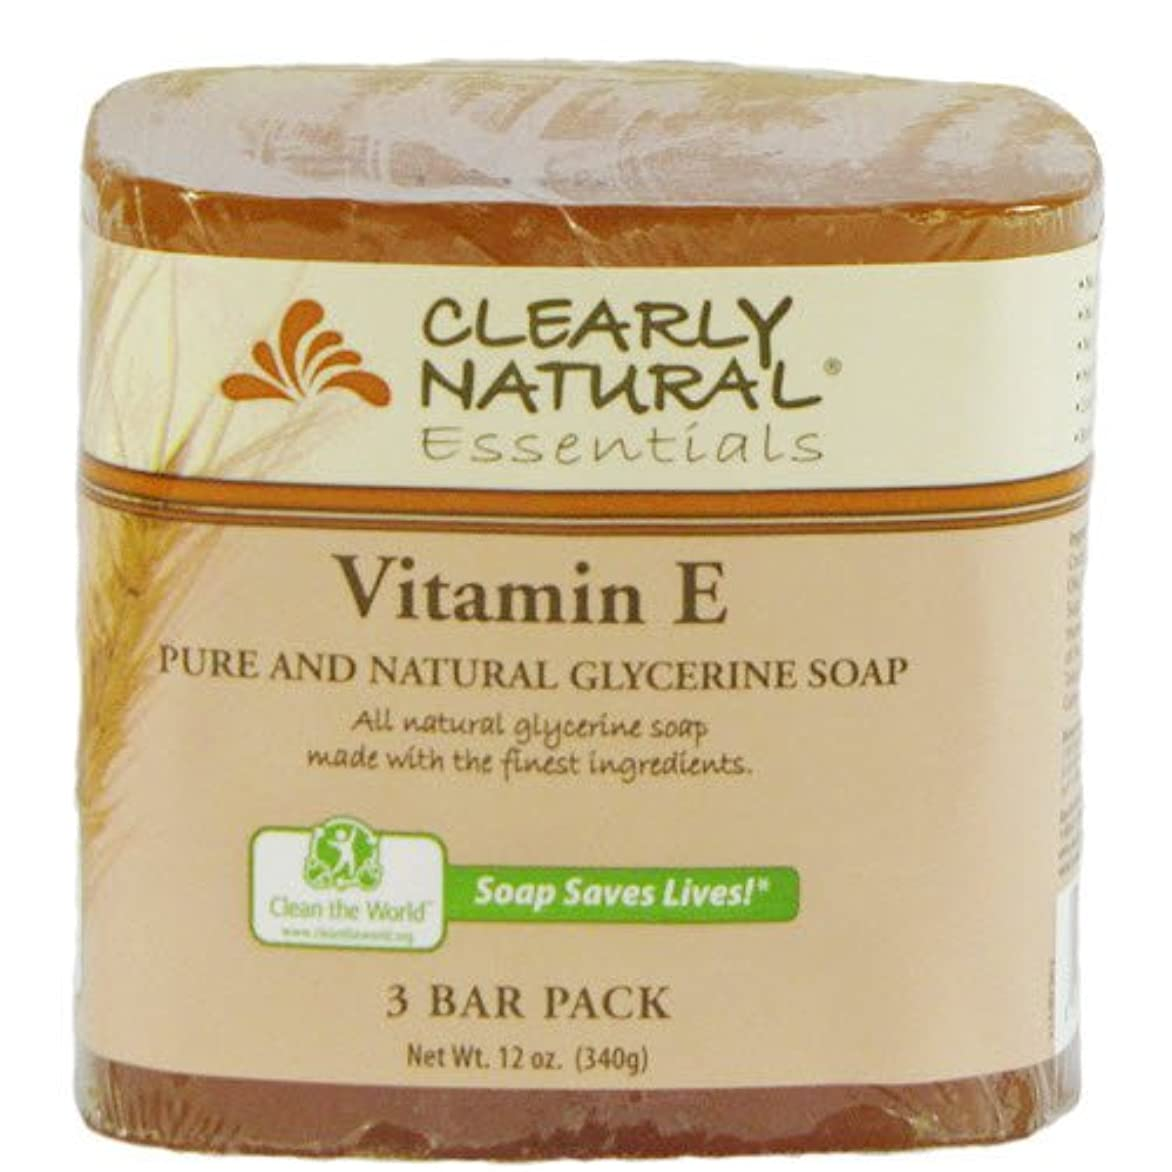 キルス石豆Clearly Natural, Pure and Natural Glycerine Soap, Vitamin E, 3 Bar Pack, 4 oz Each